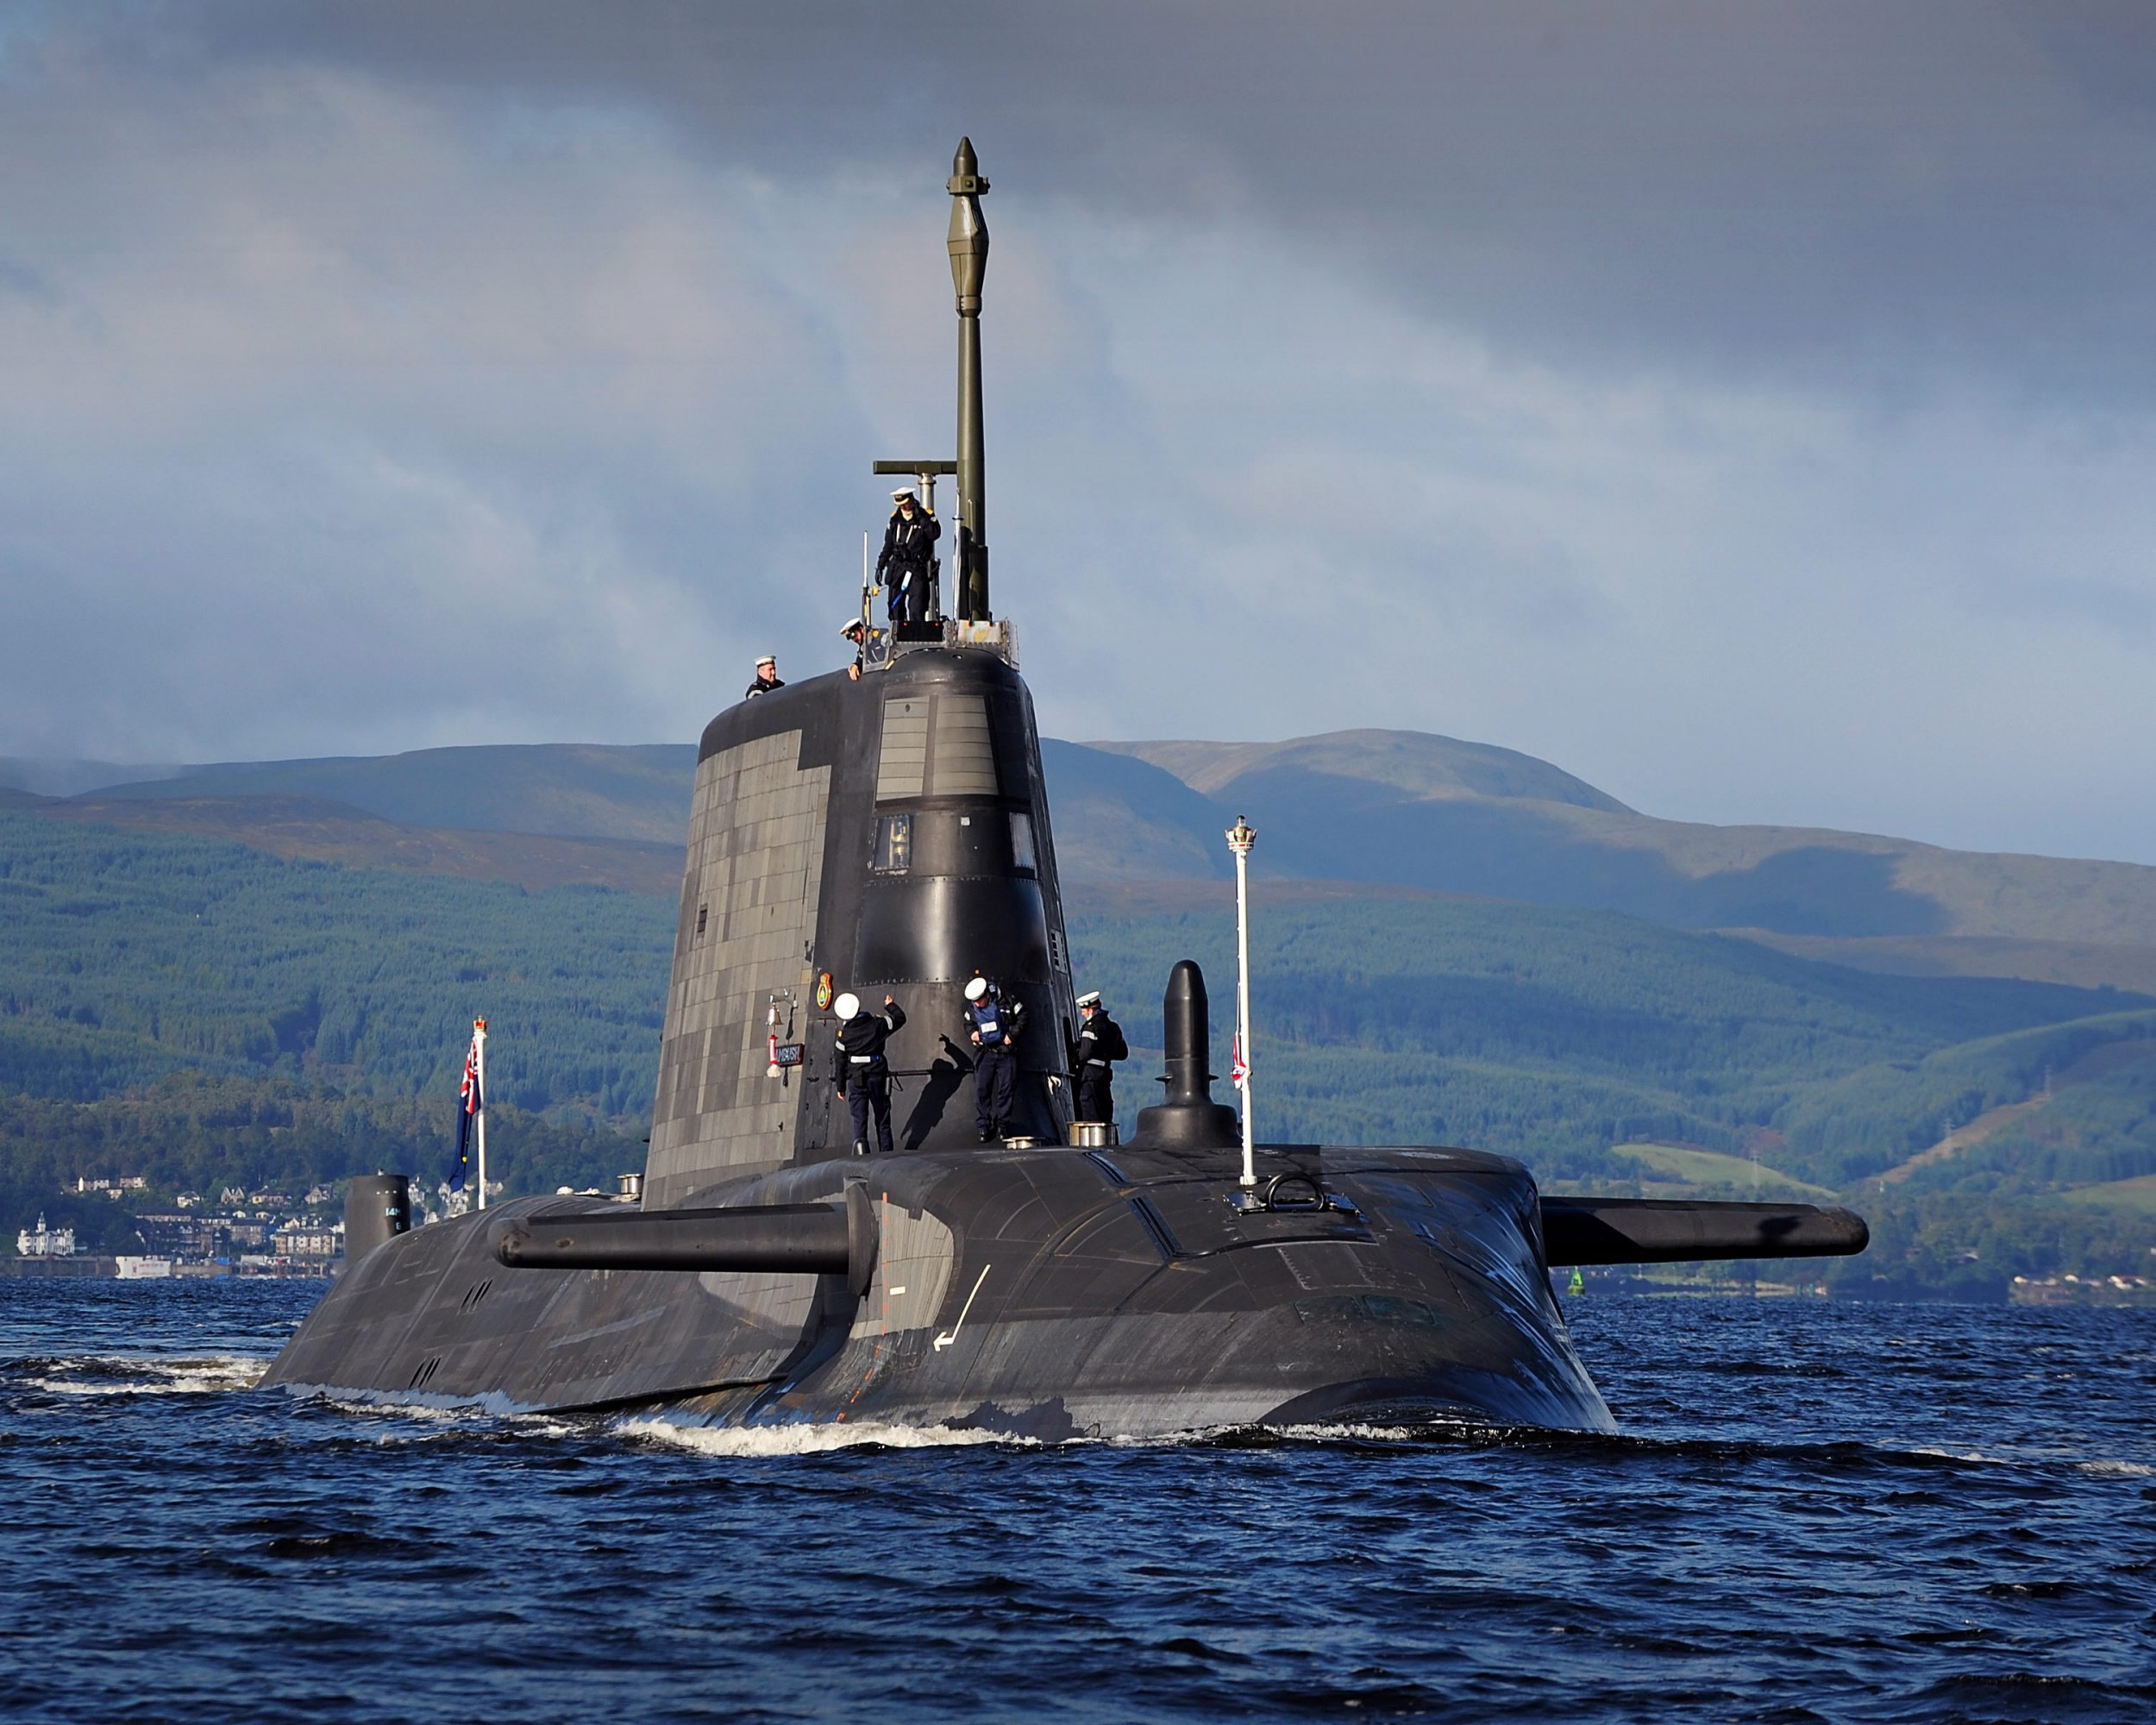 The British Royal Navy's Astute Class attack submarine, HMS Ambush, the second of the Royal Navy?s new Astute Class attack submarines, sailing into Her Majesty?s Naval Base Clyde, Faslane, Scotland, to begin sea trials on 19 September 2012. The 7,400 tonne submarine sailed from the shipyard in Barrow-in-Furness in Cumbria, where she was built, to HMNB Clyde in Scotland. The seven Astute Class boats planned for the Royal Navy are the most advanced and powerful attack submarines Britain has ever sent to sea. EPA/LA(Phot) STU HILL / BRITISH MINISTRY OF DEFENCE / HANDOUT MANDATORY CREDIT: CROWN COPYRIGHT